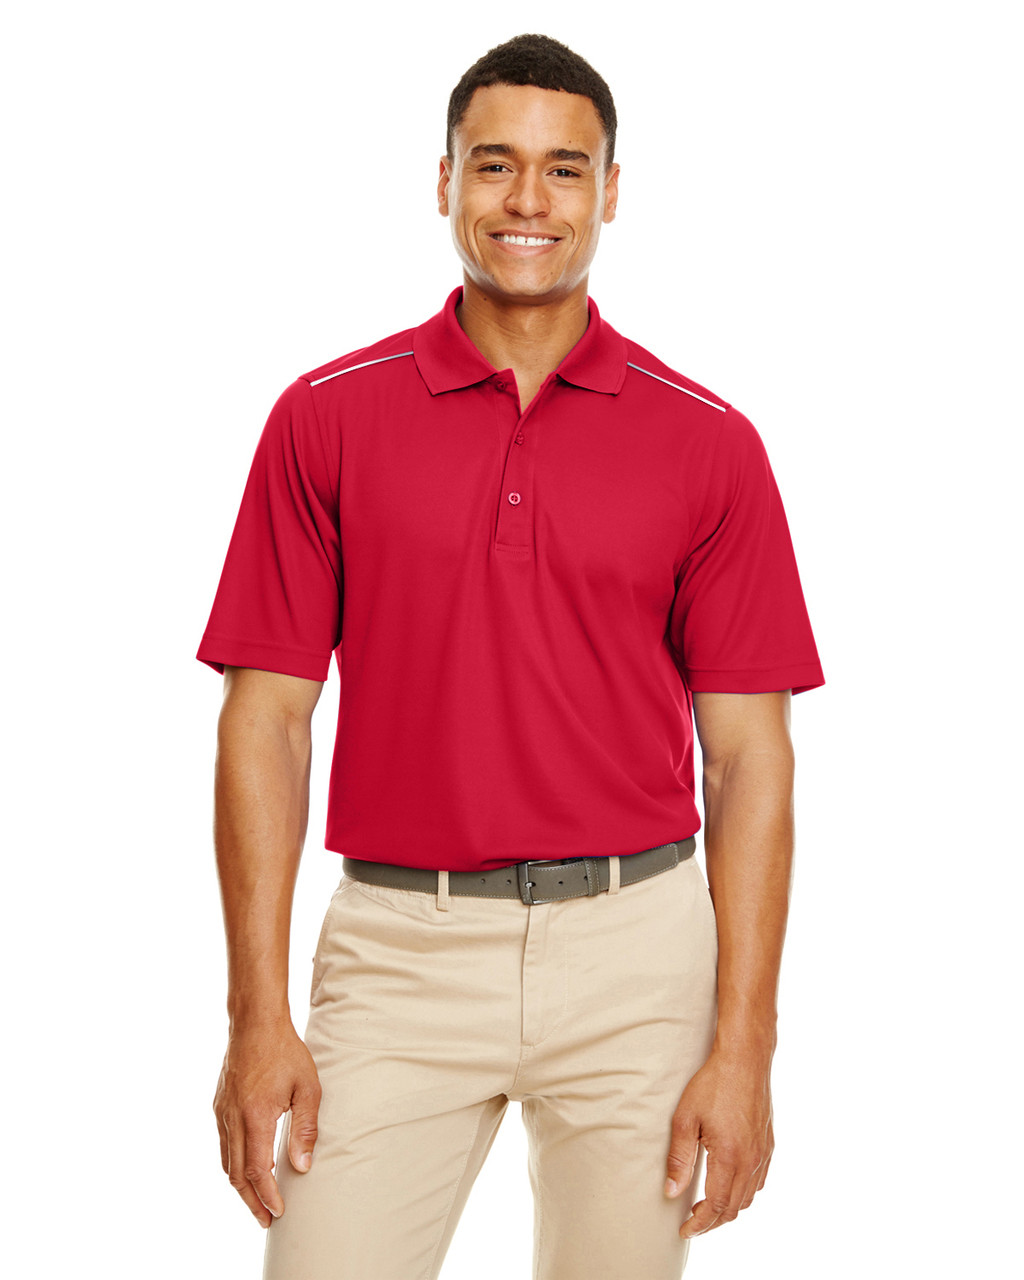 Classic Red - 88181R Ash City - Core 365 Men's Radiant Performance Piqué Polo Shirt with Reflective Piping | Blankclothing.ca